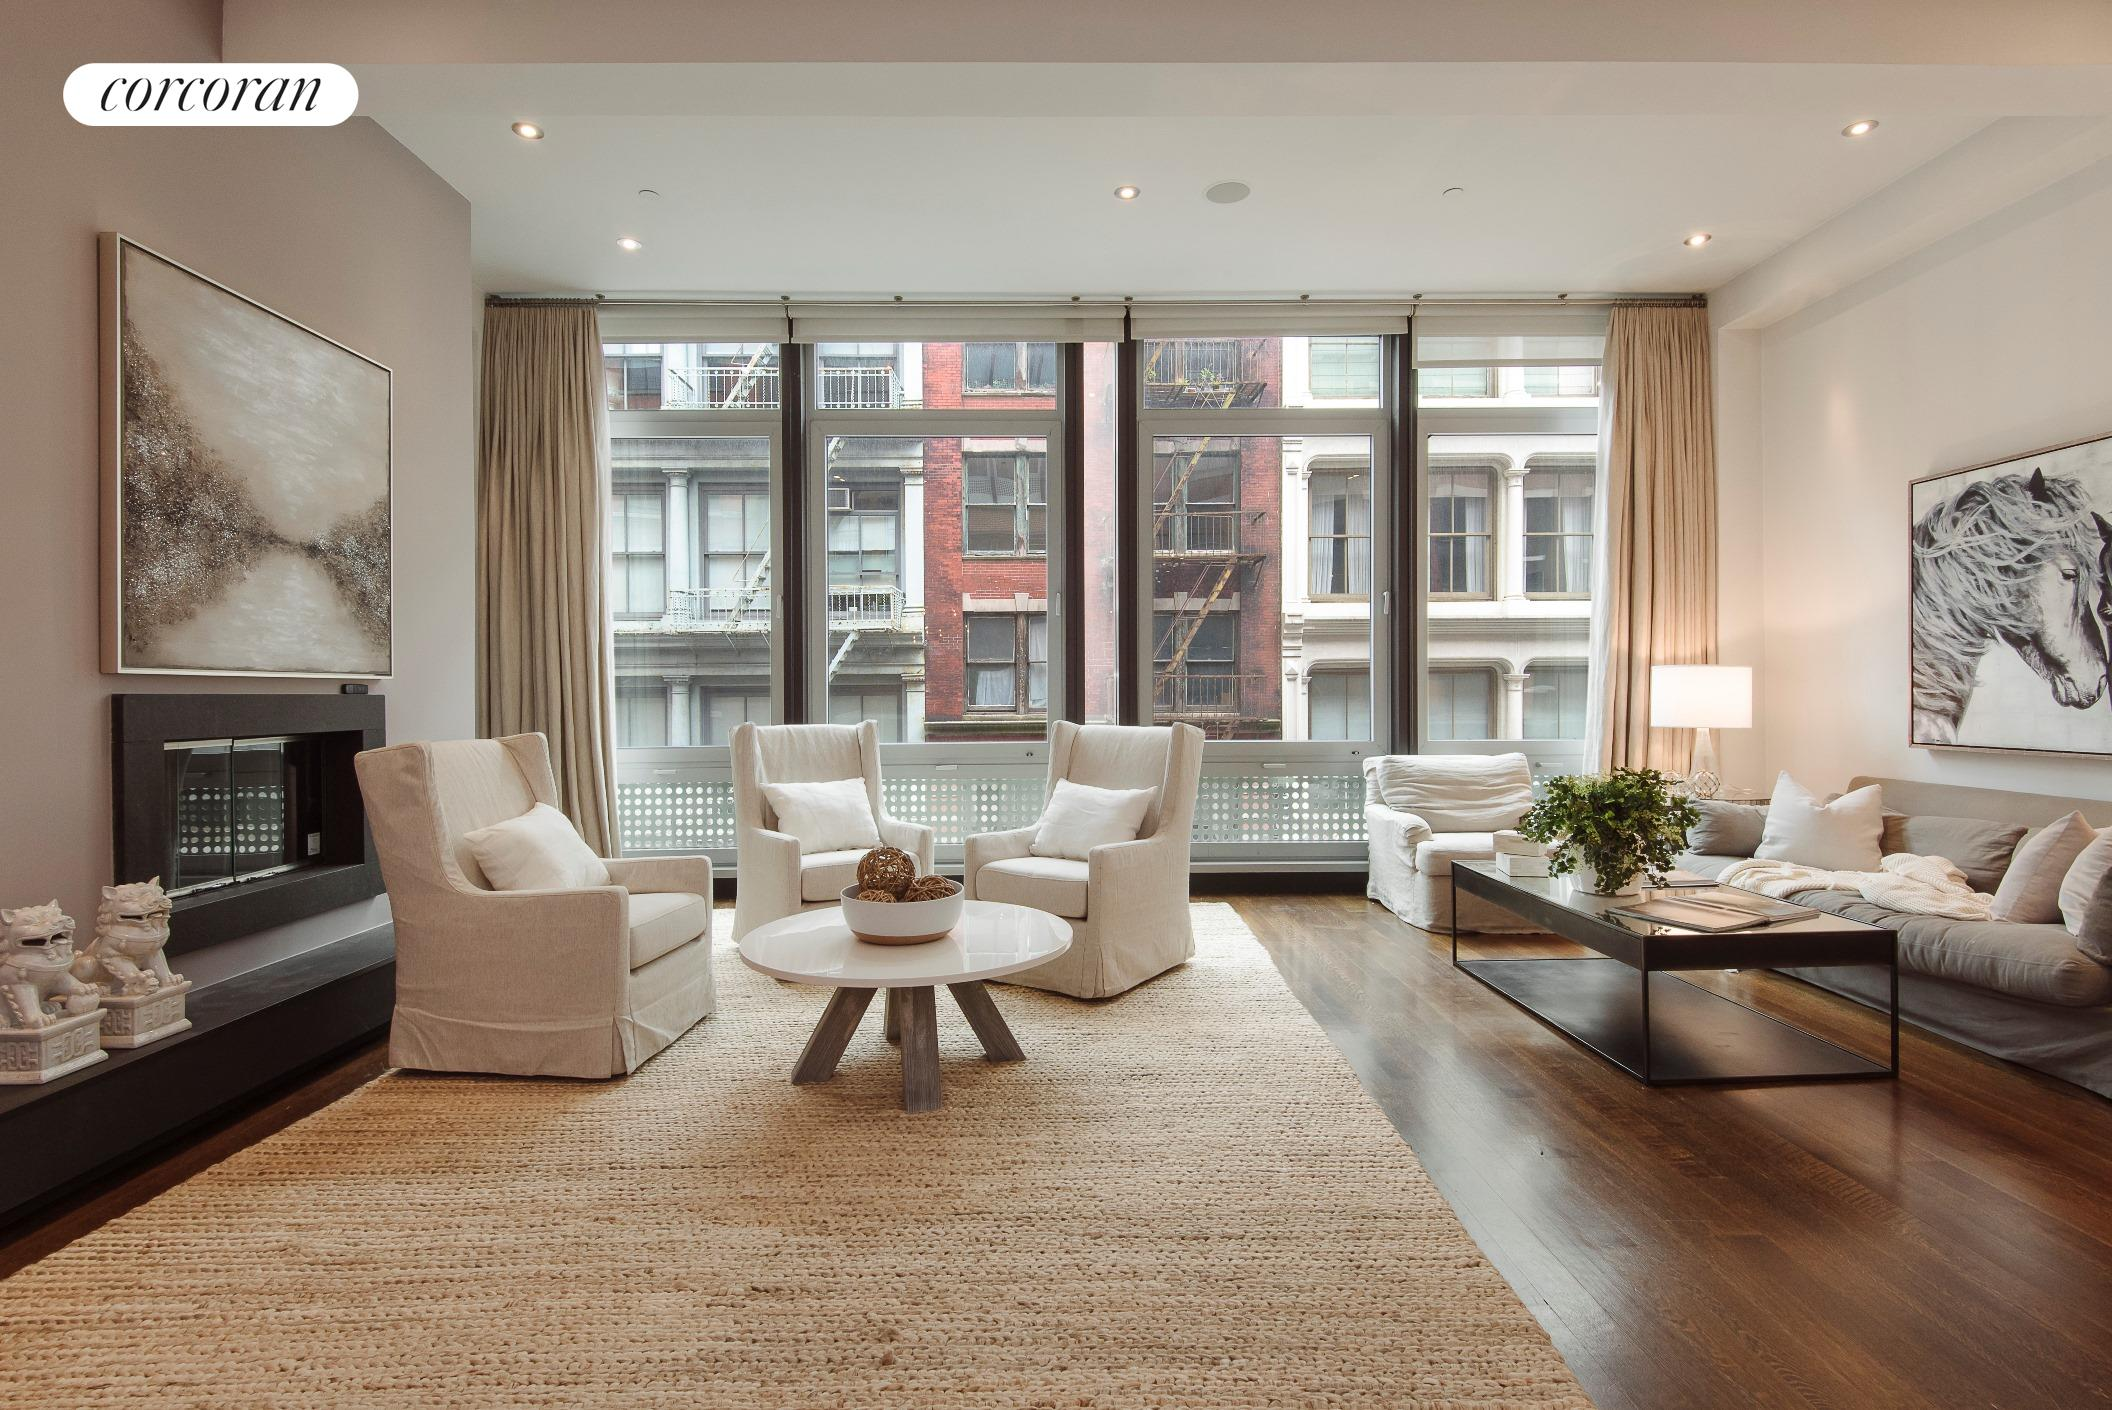 72 MERCER ST, 2 WEST, Living room overlooking Mercer Street w/ 11' ceil